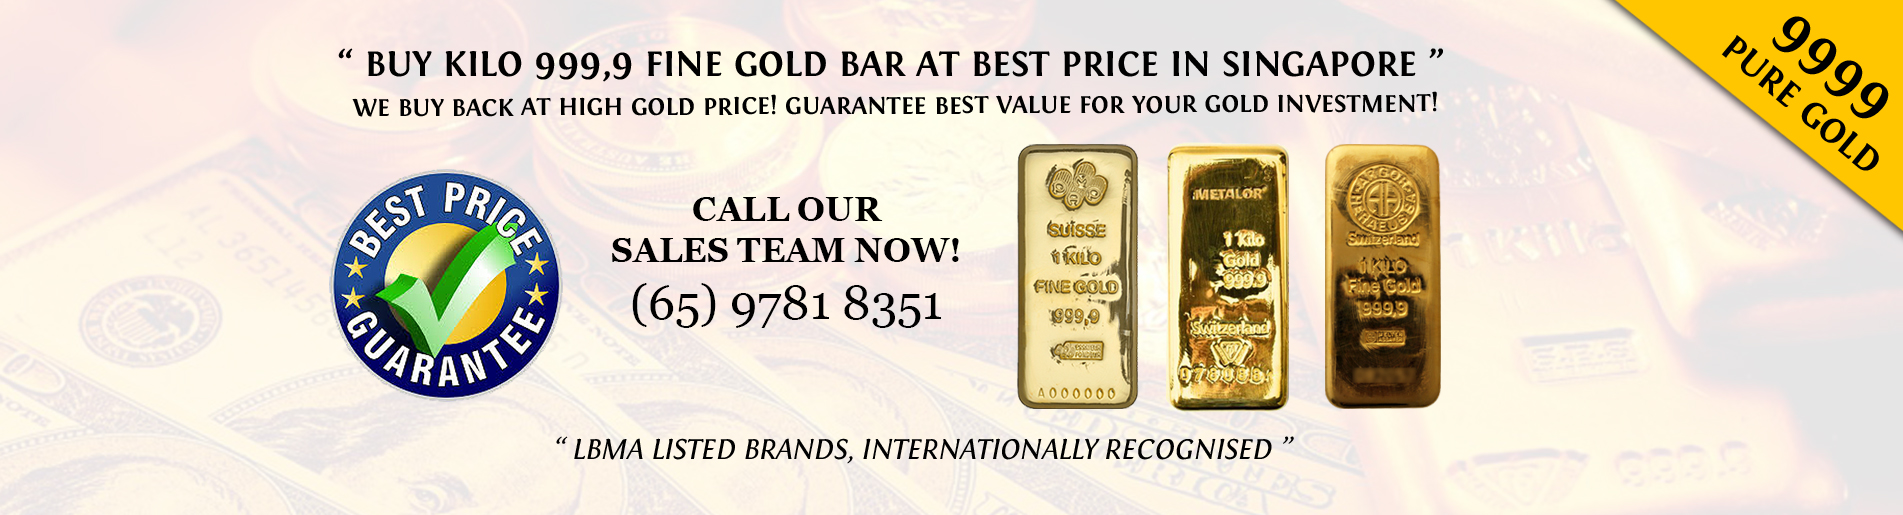 Buy Kilo Gold Bars At Best Price In Singapore